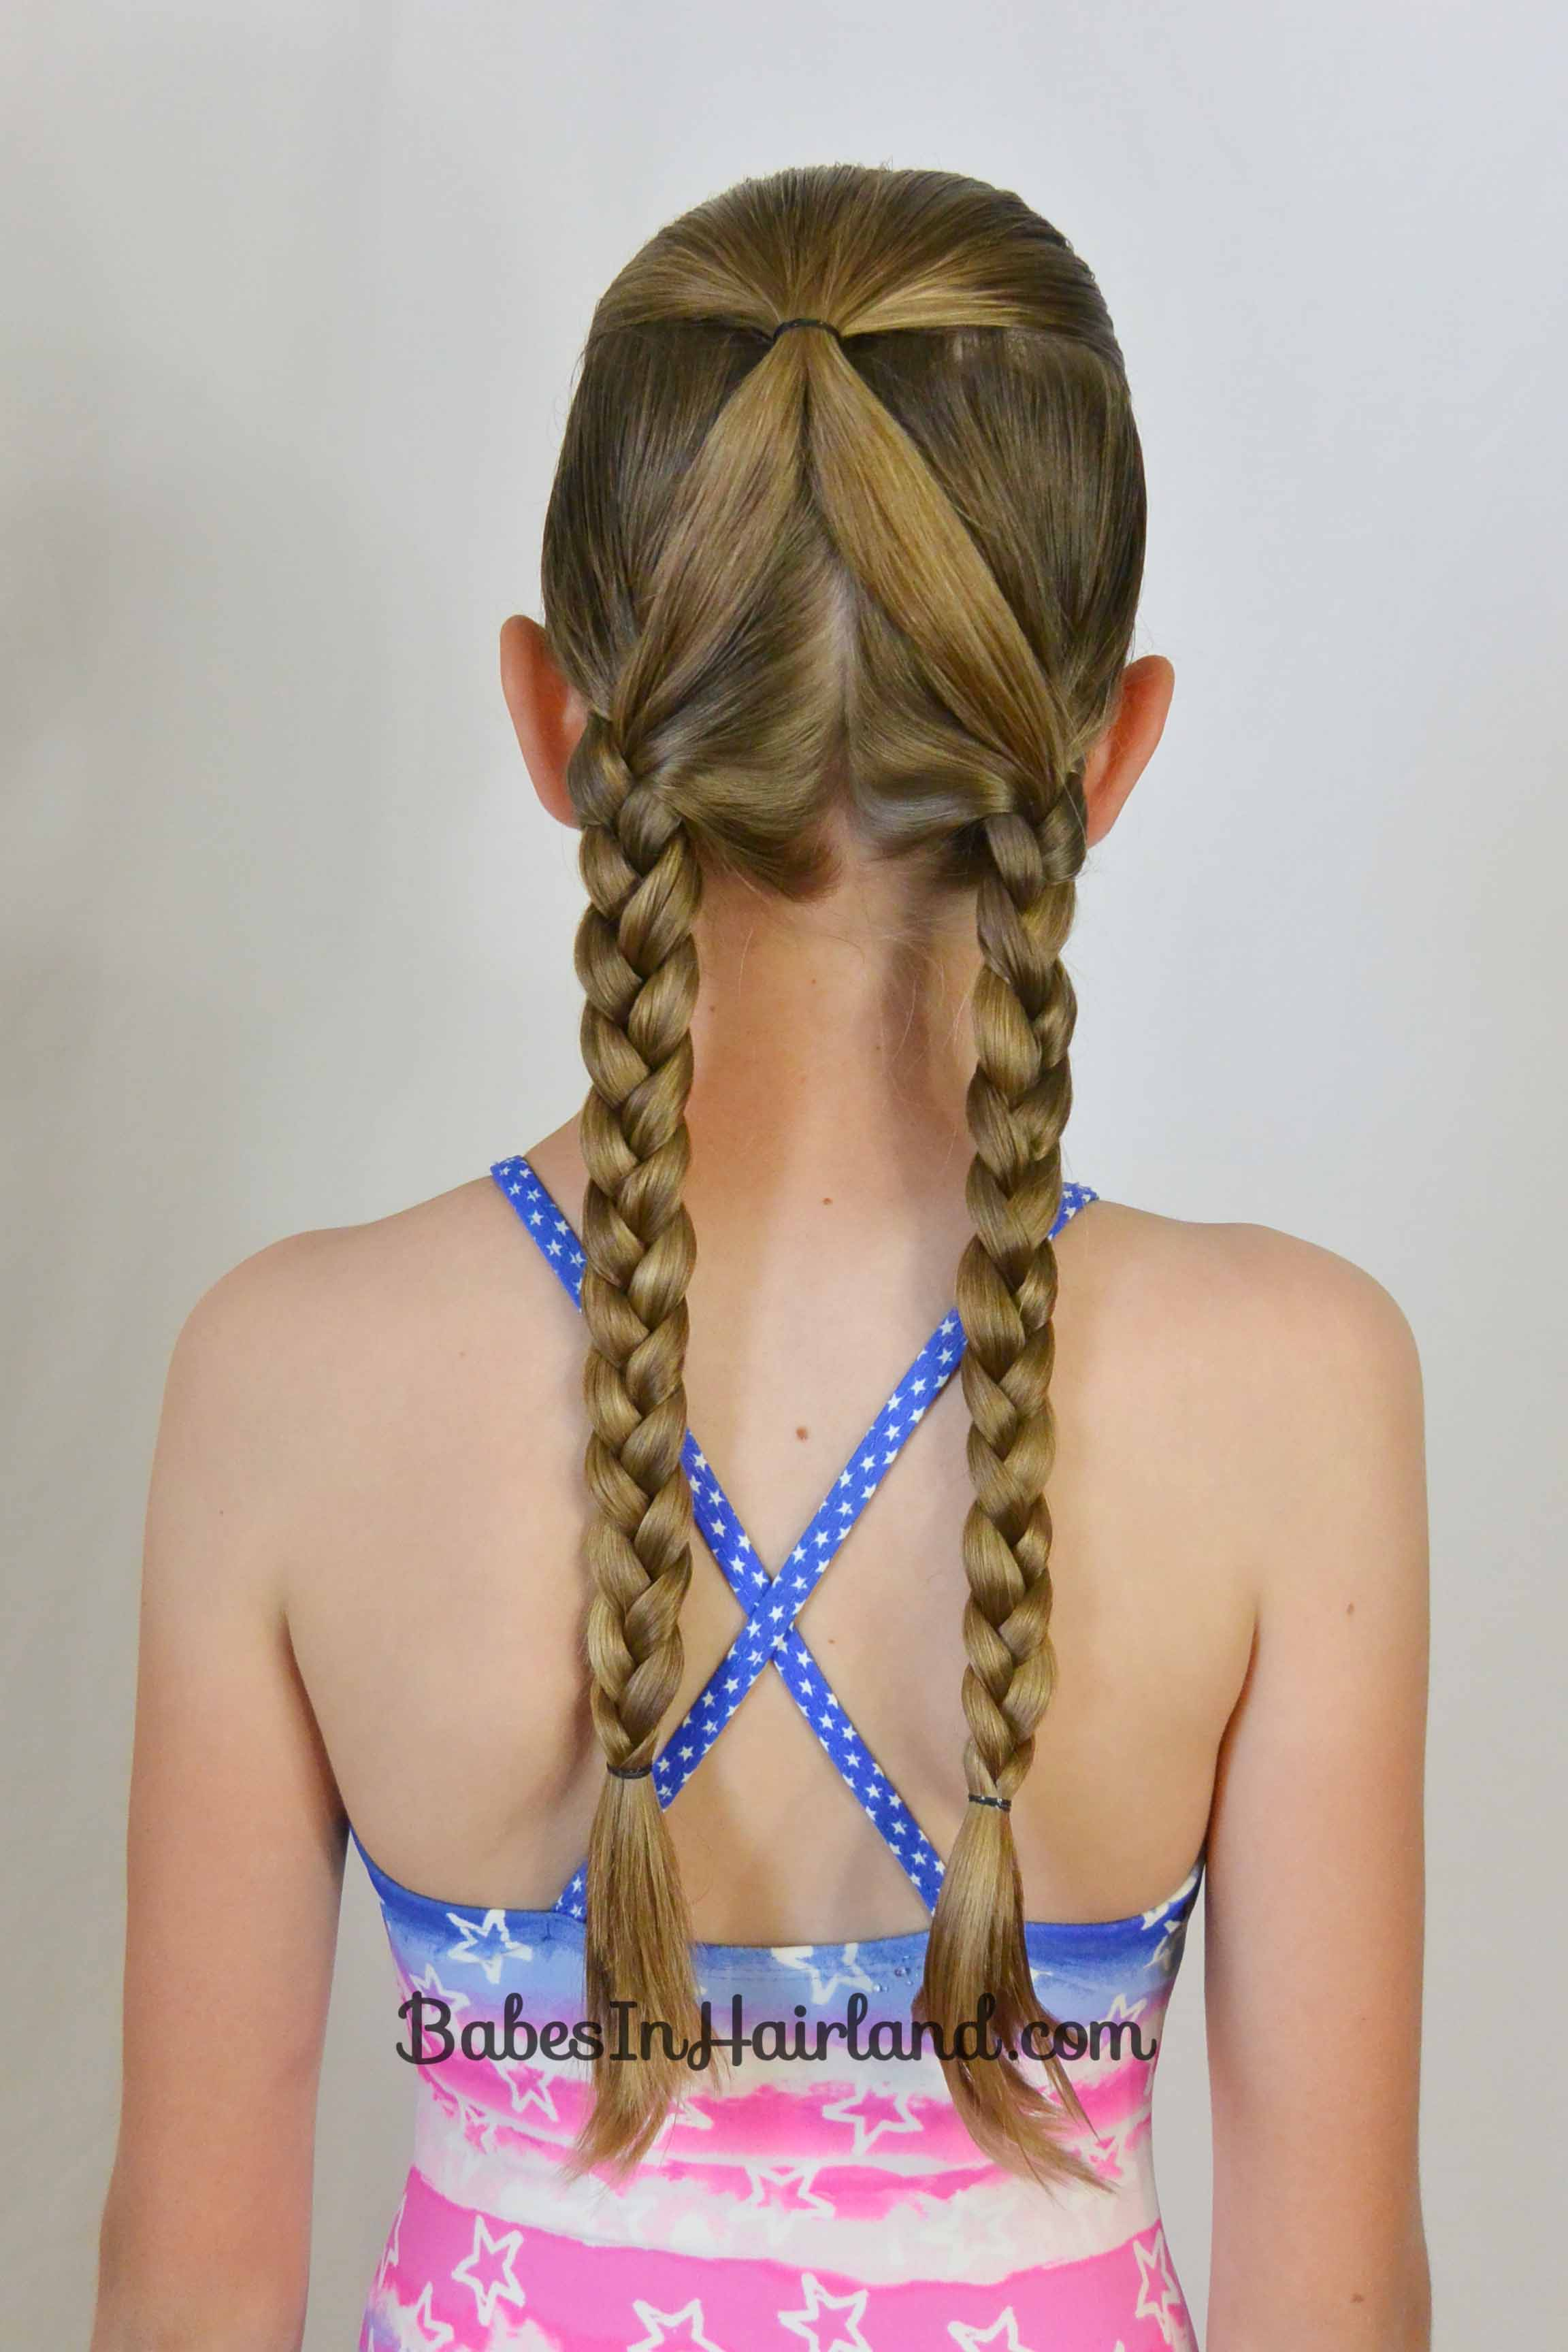 10 No Fuss Hairstyles For Summer Or The Pool Babes In Hairland